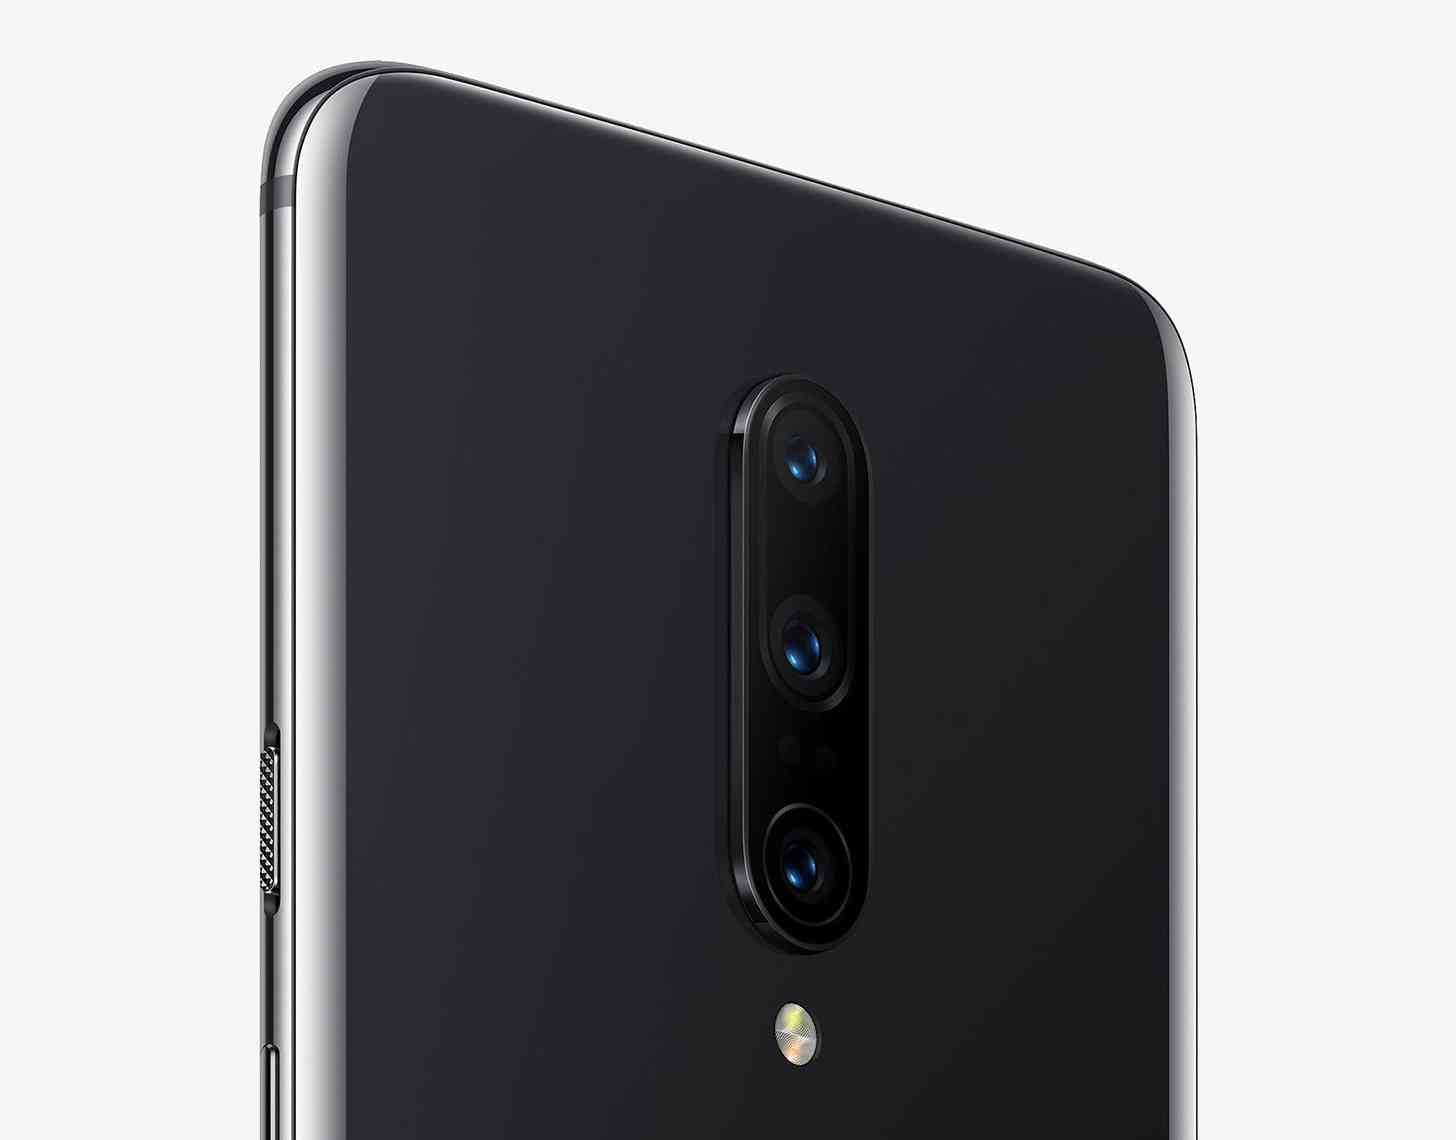 OnePlus 7 Pro telephoto lens doesn't offer 3x optical zoom